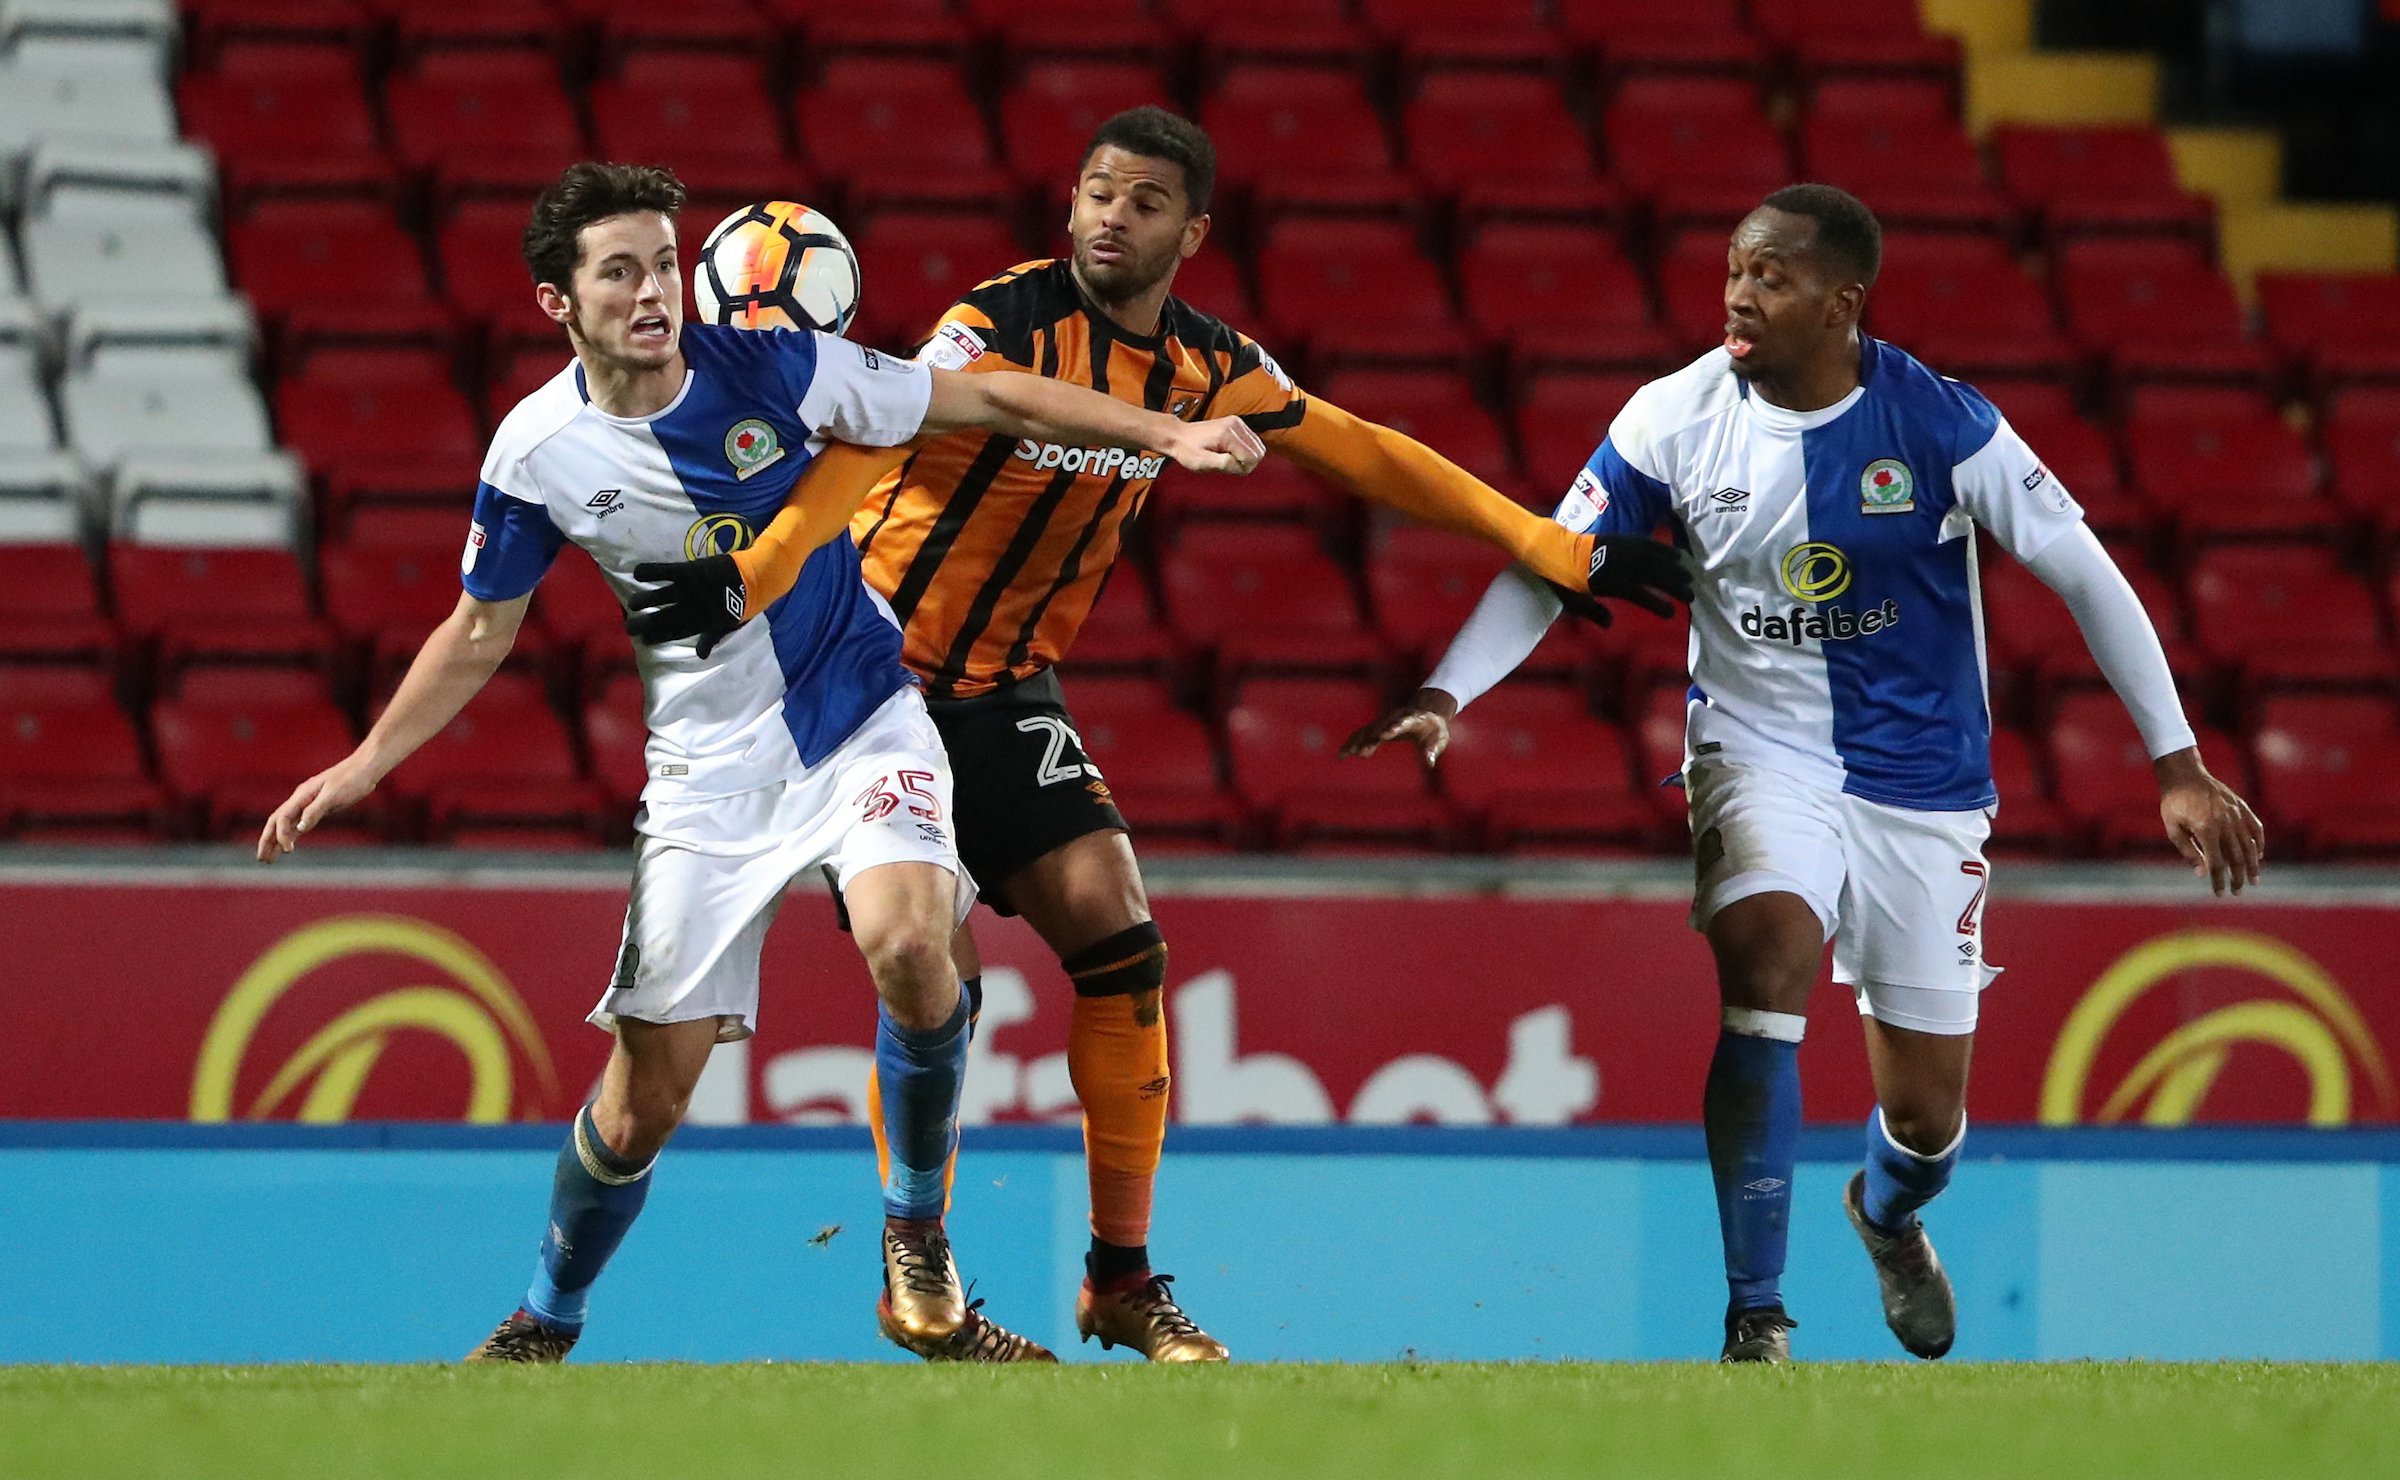 Lewis Travis made his fifth Rovers senior appearance in the FA Cup defeat to Hull City